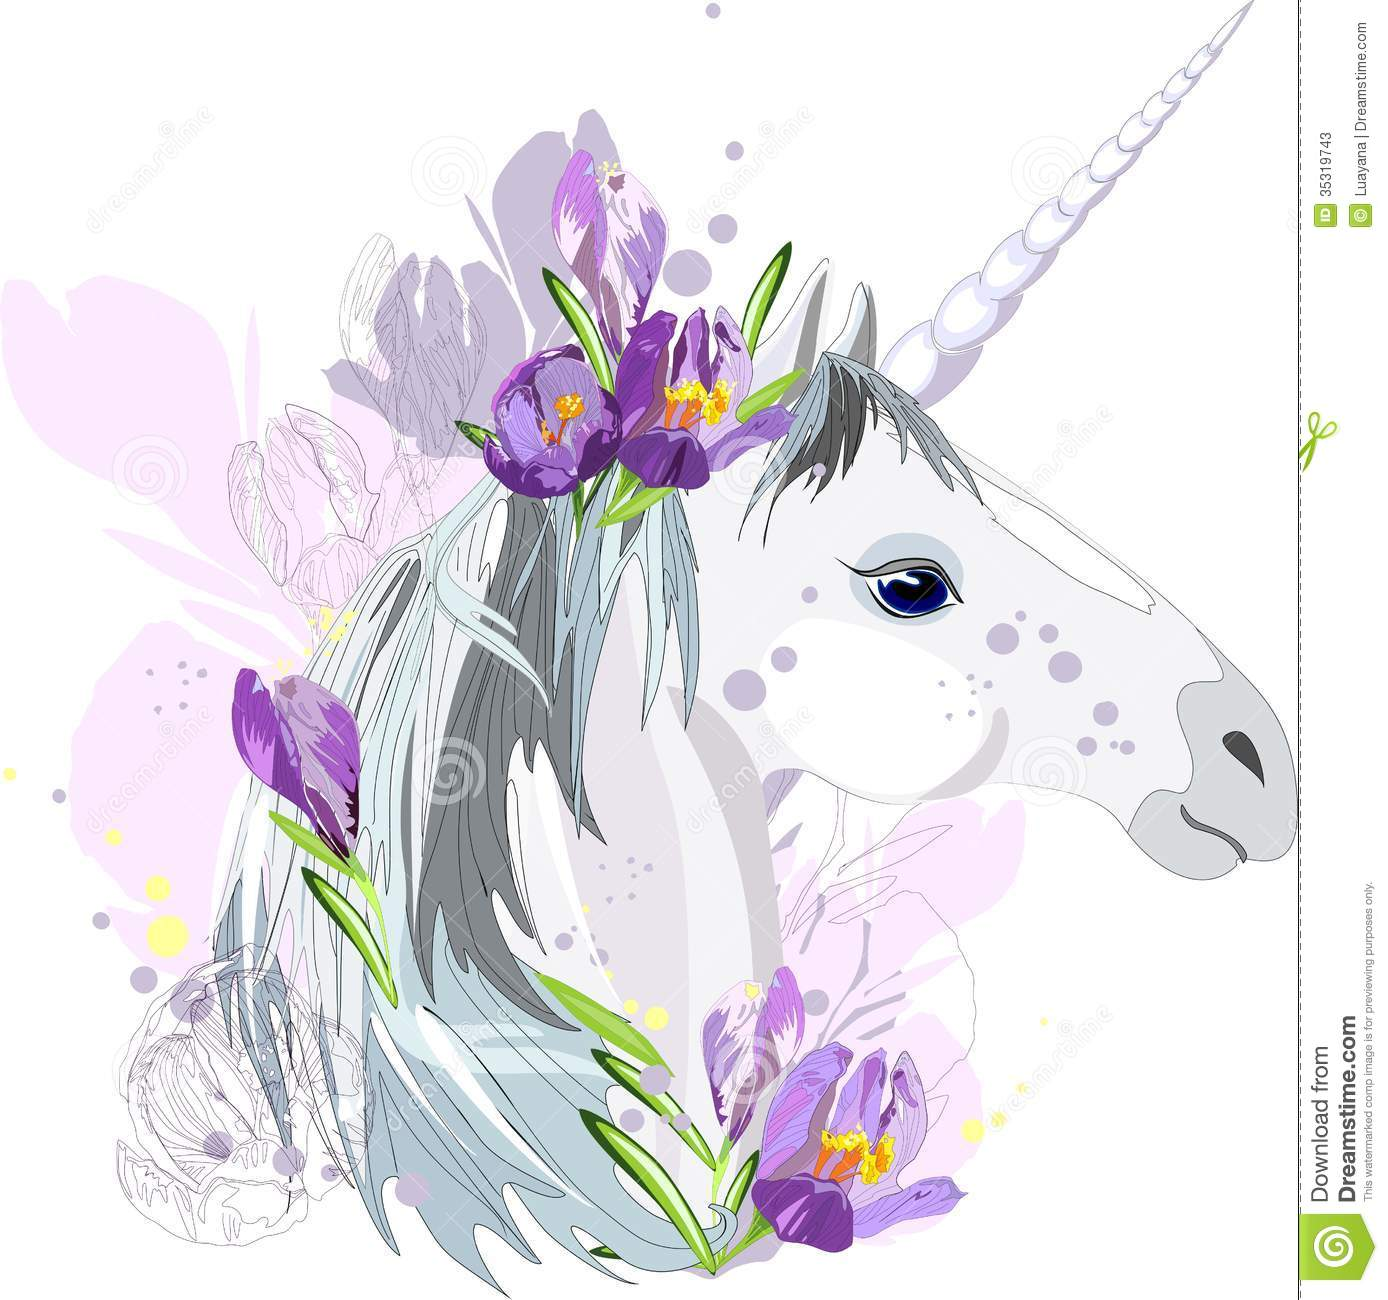 Unicorn Stock Photos - Image: 35319743